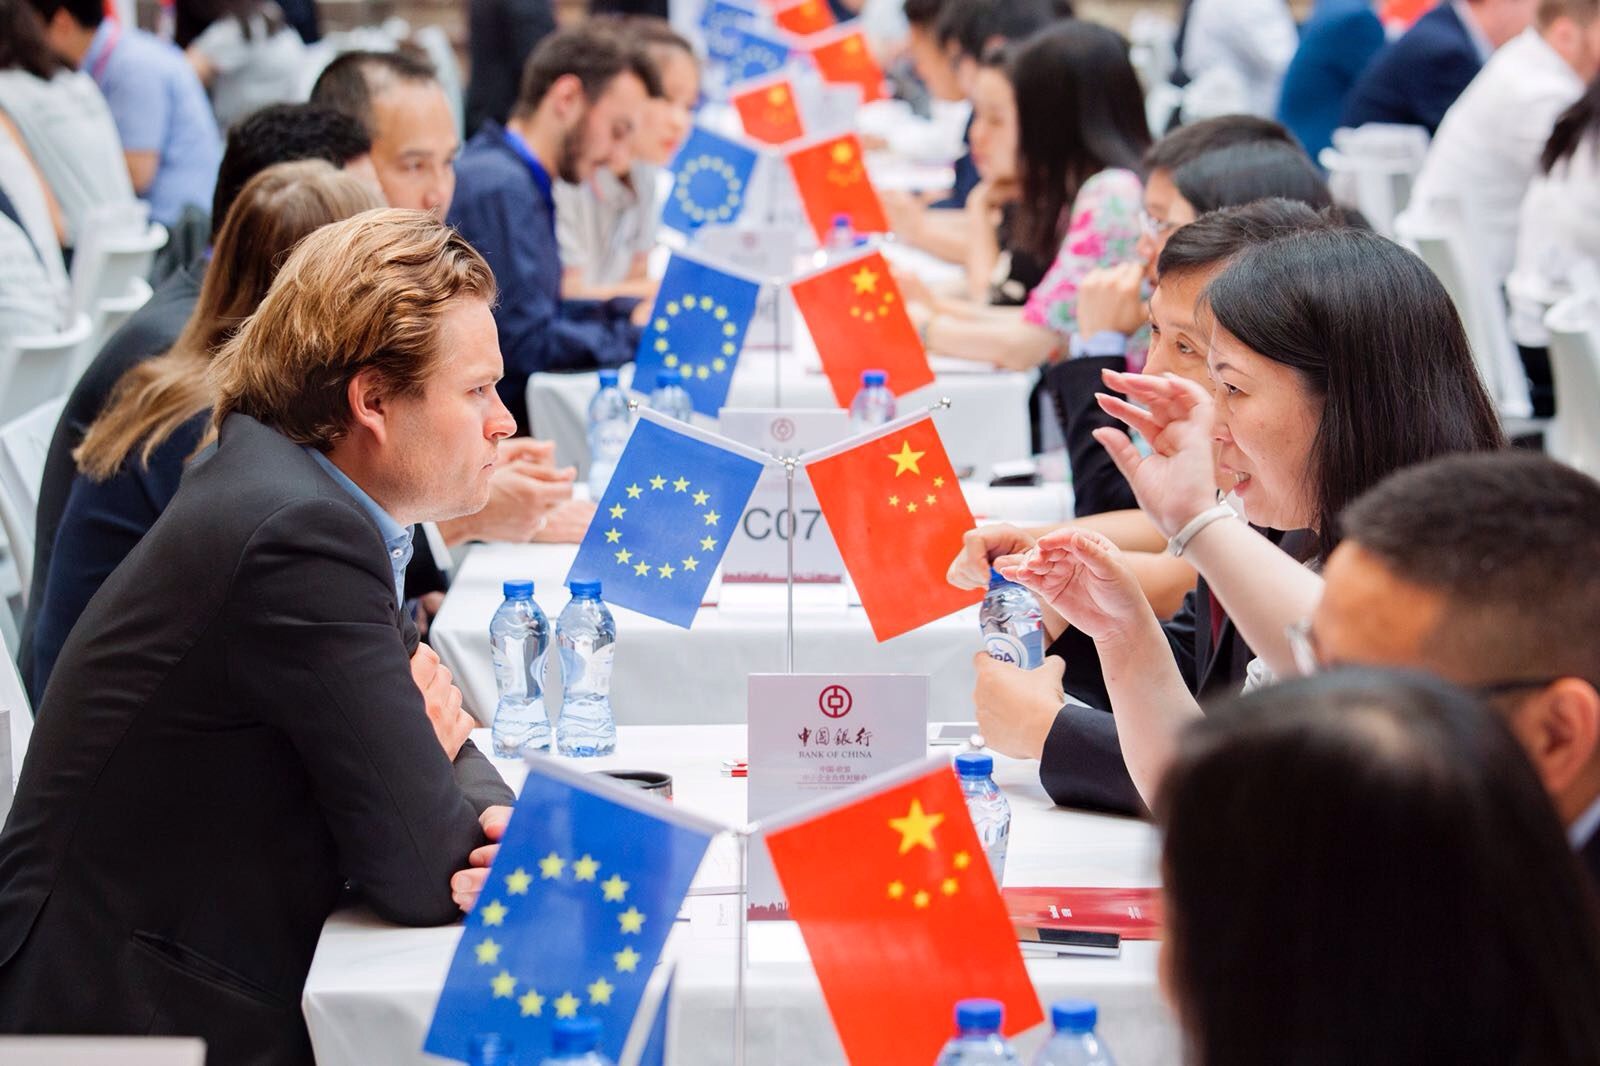 EU and Chinese SMEs matchmake in Brussels